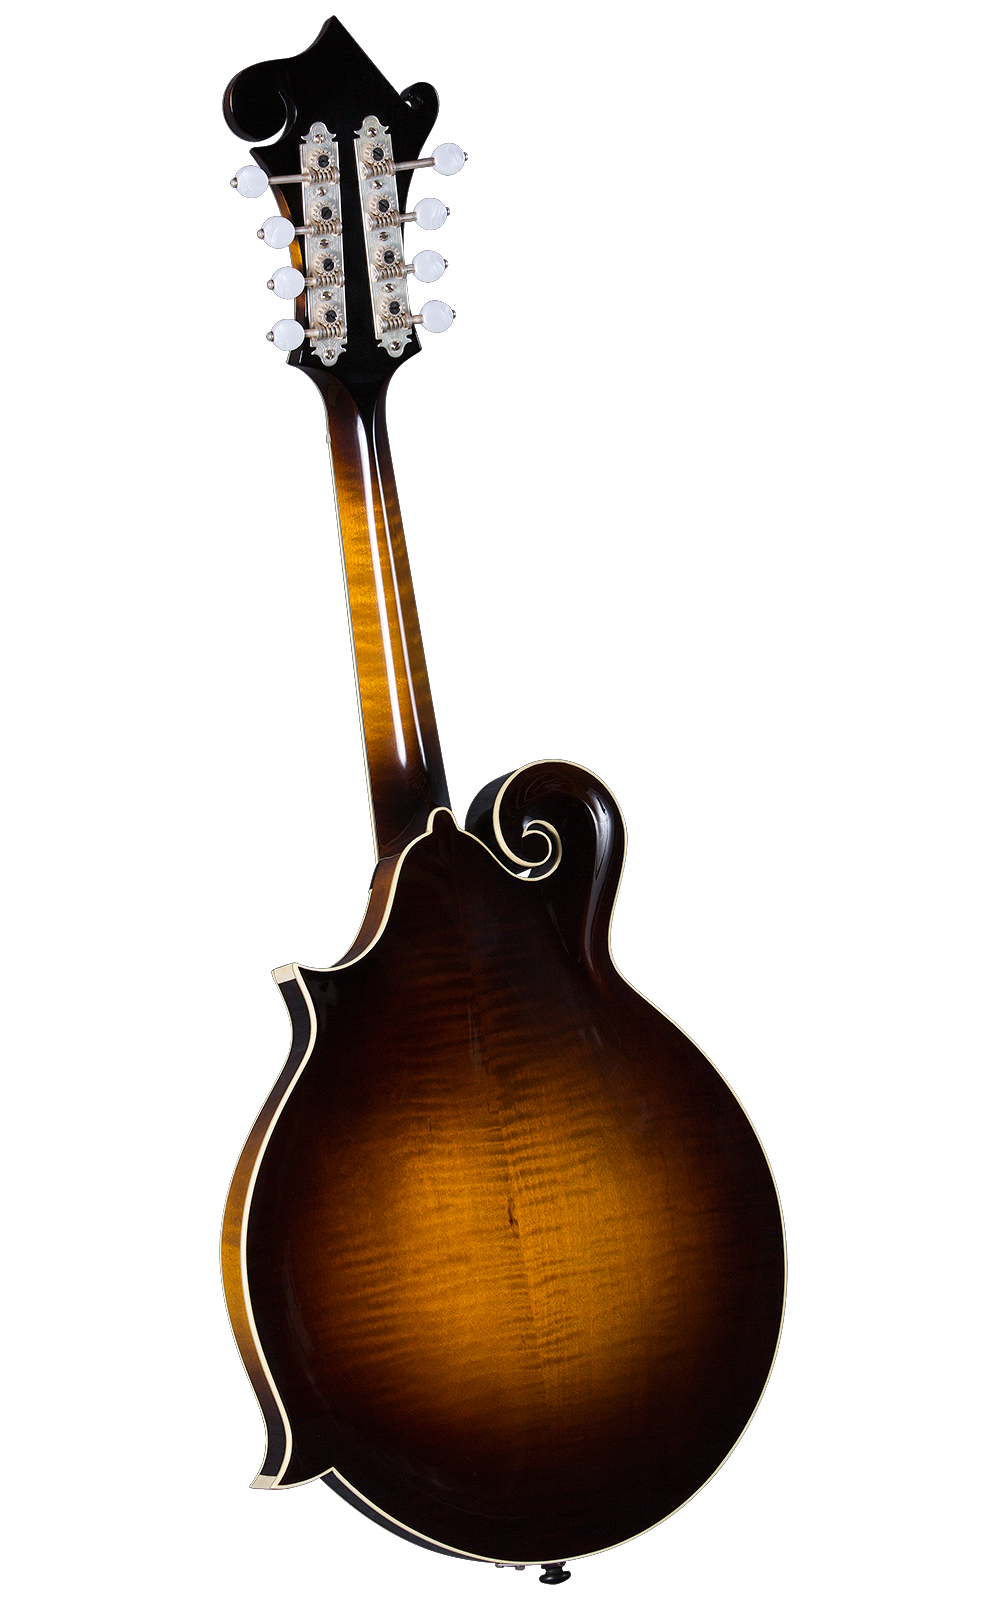 Kentucky KM-1000 Master F-model Mandolin - Vintage Sunburst